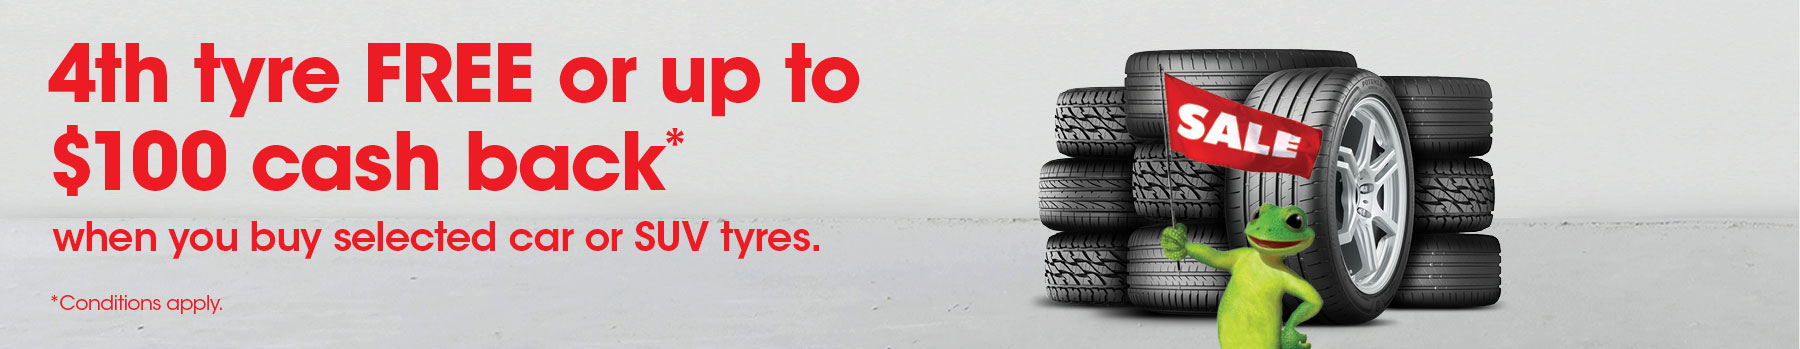 4th tyre FREE or up to $100 cash back